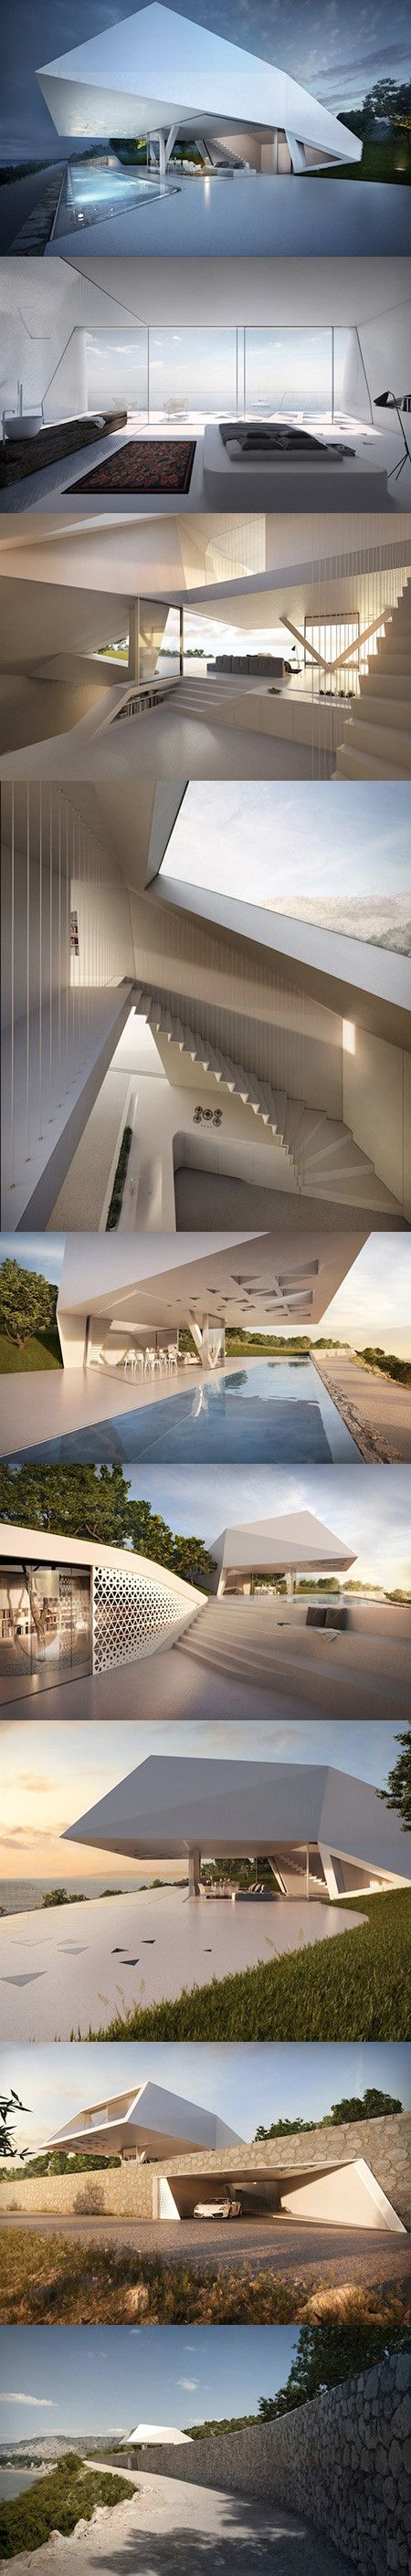 694 best Architecture images on Pinterest | Amazing architecture ...